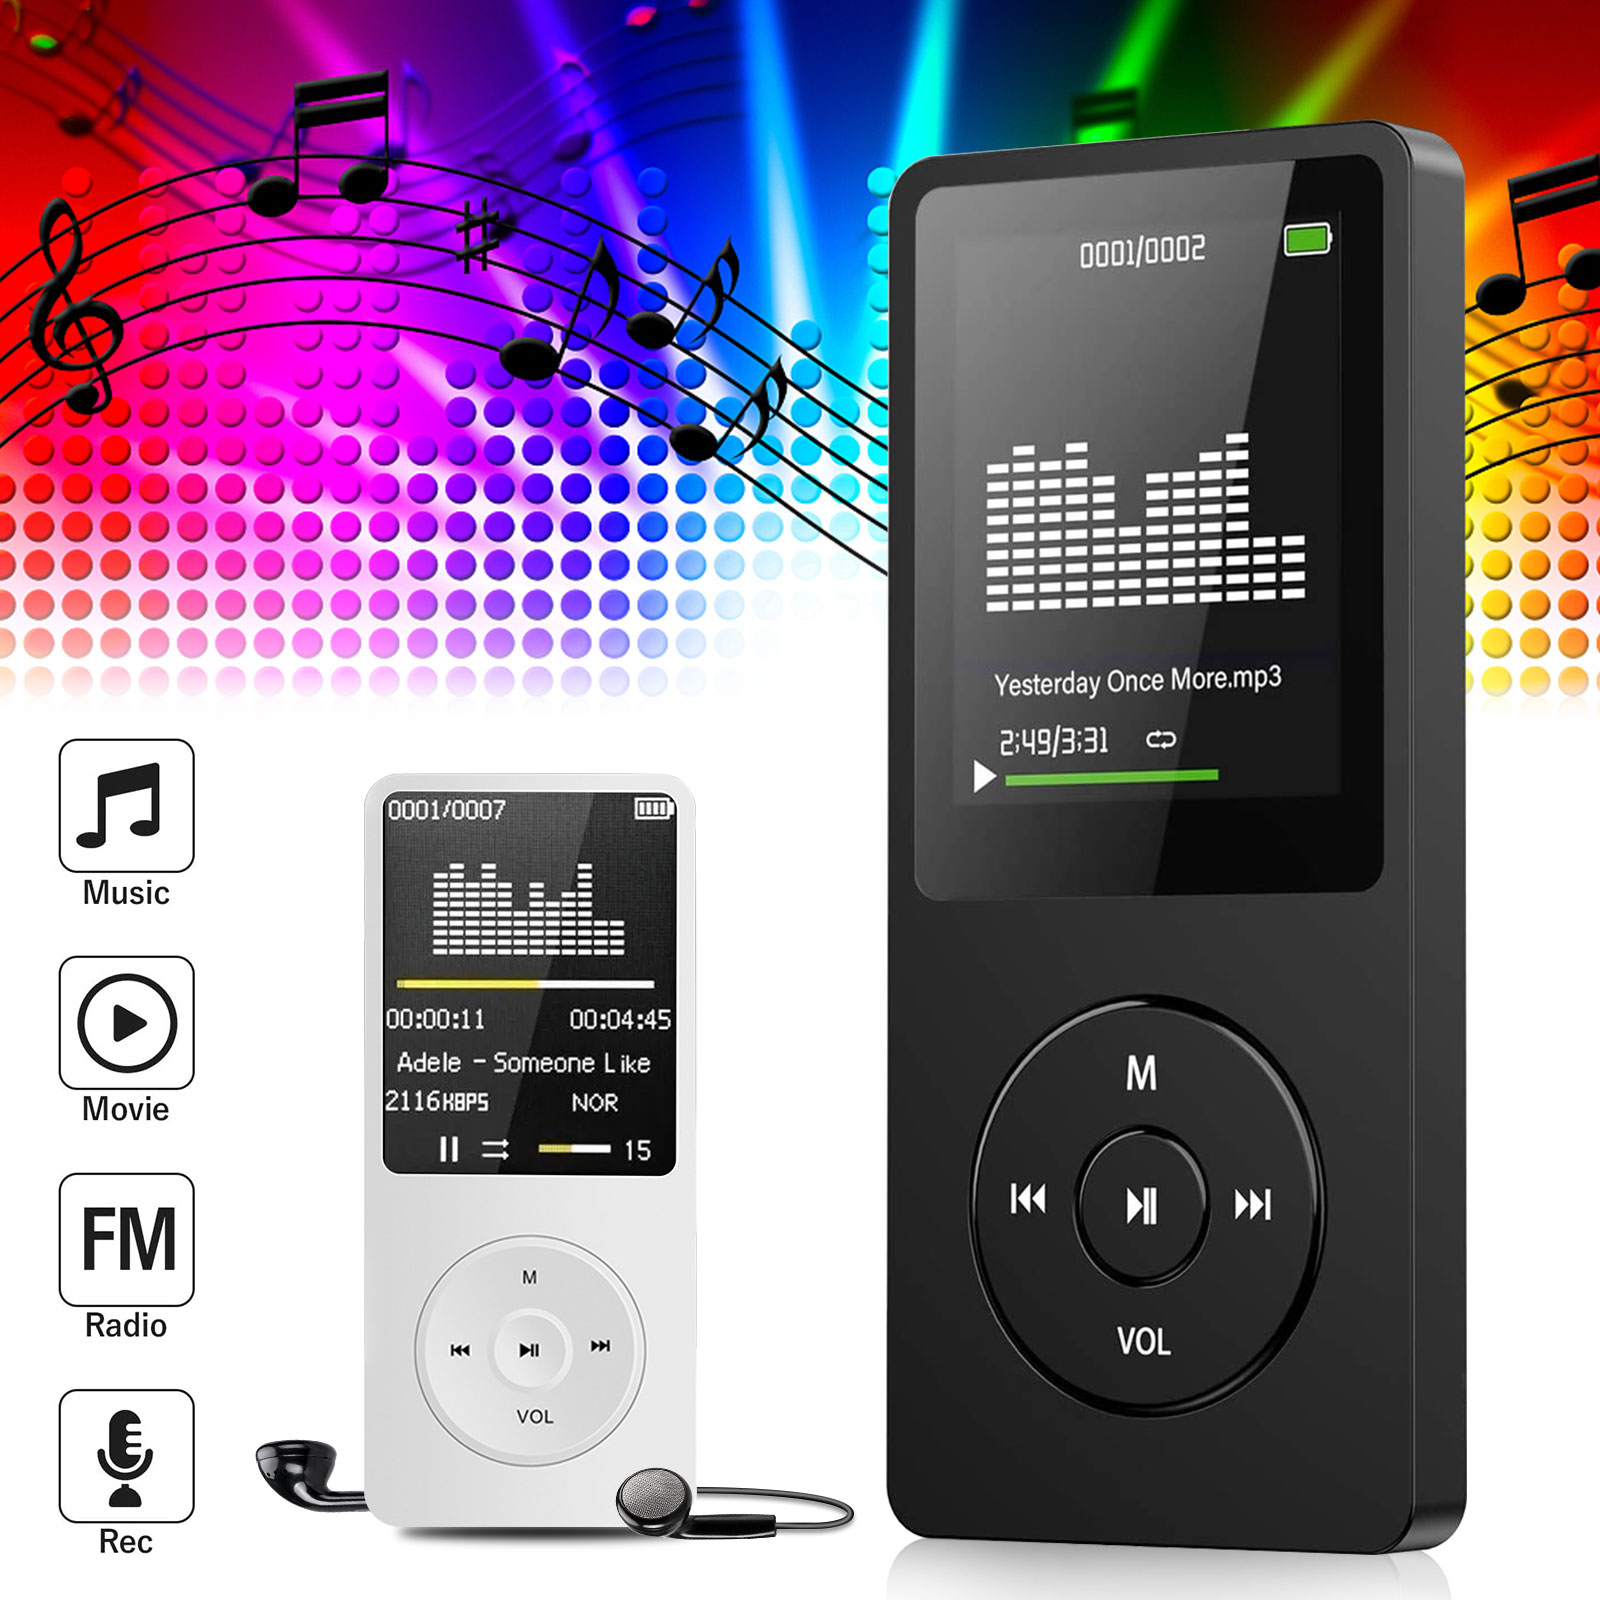 Kindle MP3 – How to Play Any Music on Kindle Fire